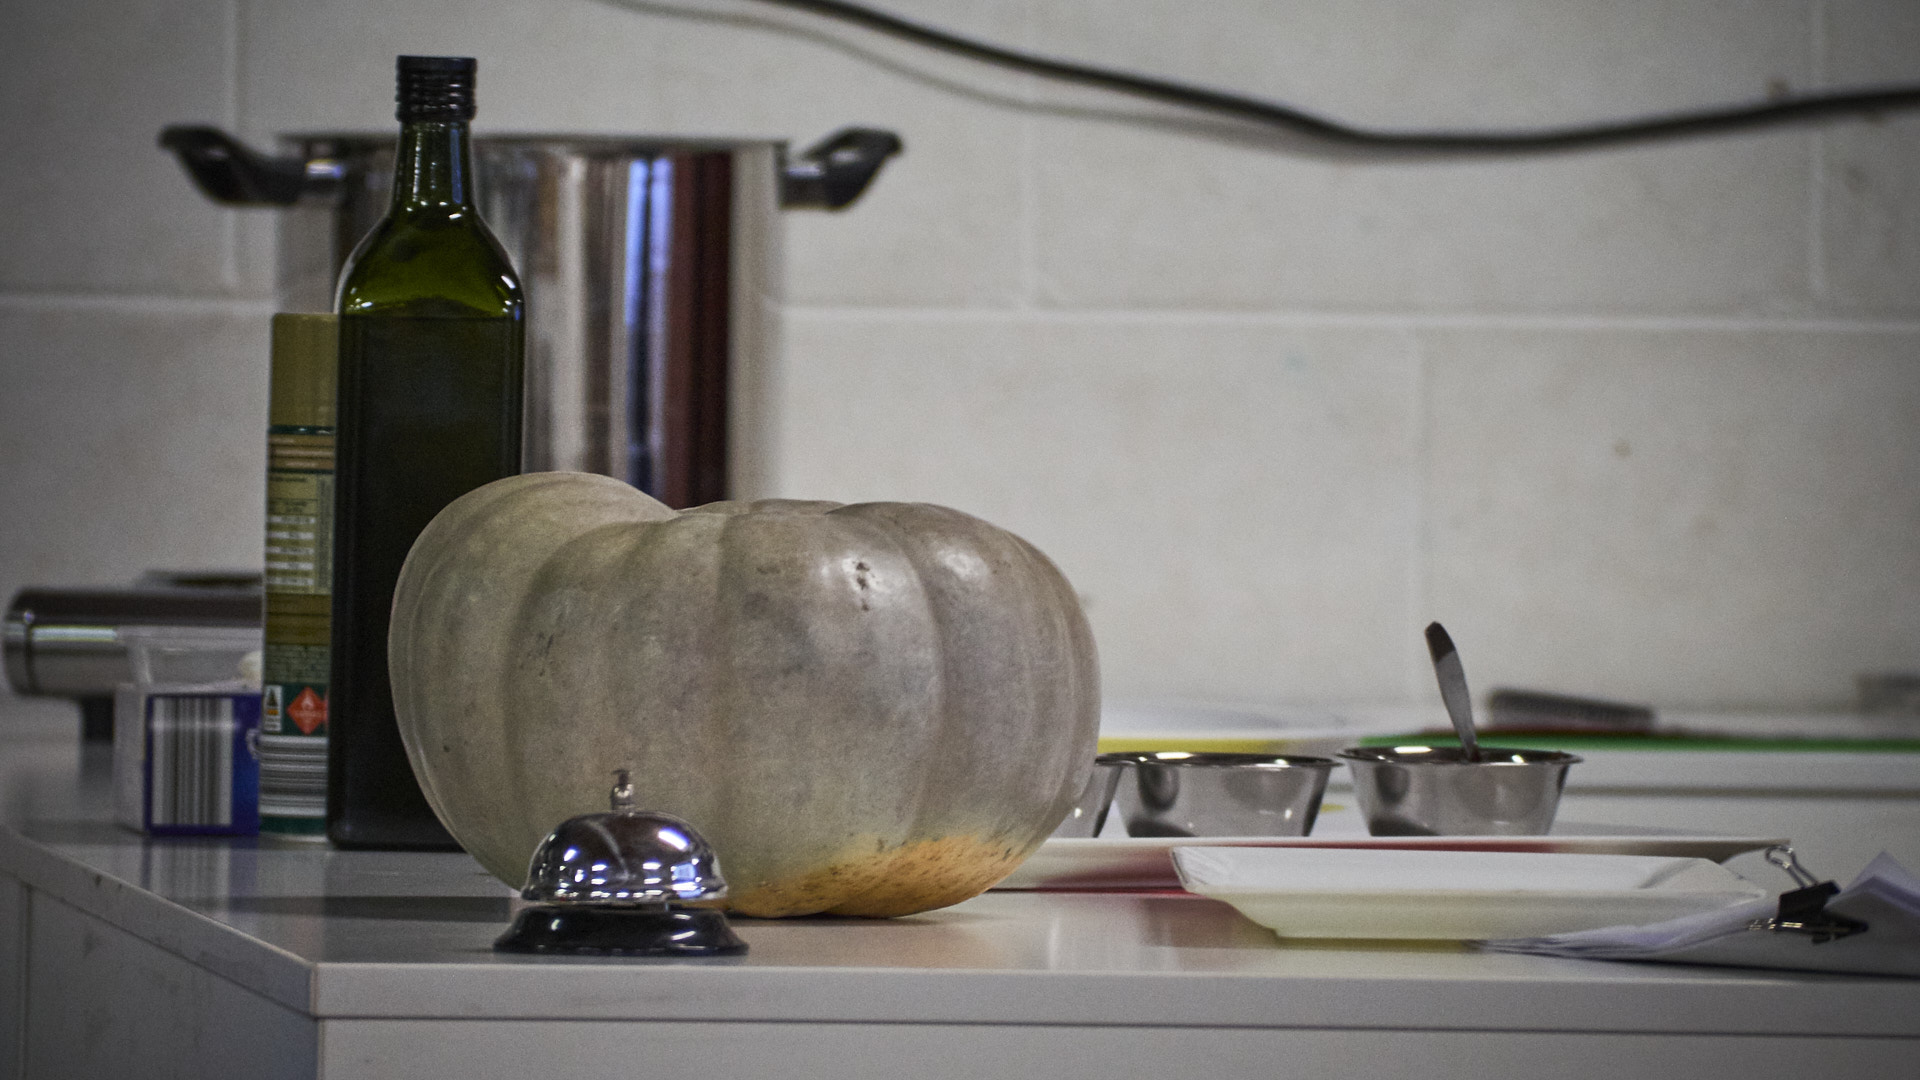 'For the Love of Pumpkin' - Cardinia Community Kitchen